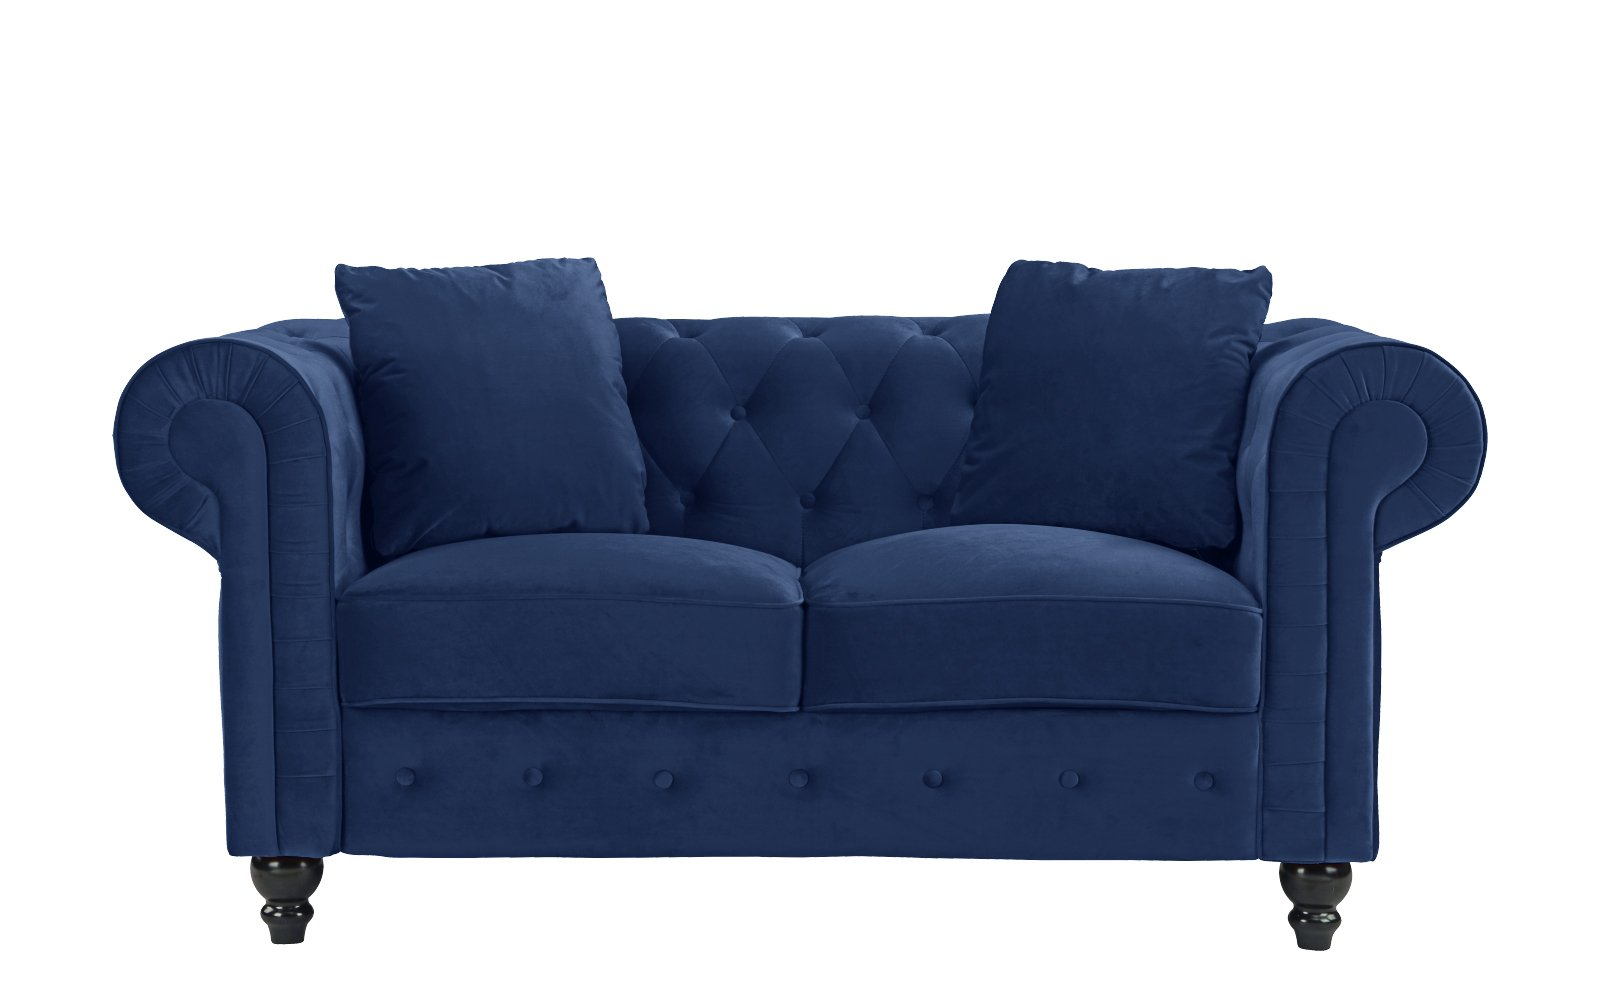 Furniture Classic Modern Scroll Arm Velvet Chesterfield Love Seat Sofa (Blue) - Ultra soft and comfortable chesterfield style love seat with tufted design for that classic and sophisticated look Premium velvet upholstery with overstuffed arms and back rests for comfort, tufted plush arm rests Removable seat cushions with velcro attached to avoid sliding, Victorian style wooden legs. - sofas-couches, living-room-furniture, living-room - 61X3SRZNrLL -